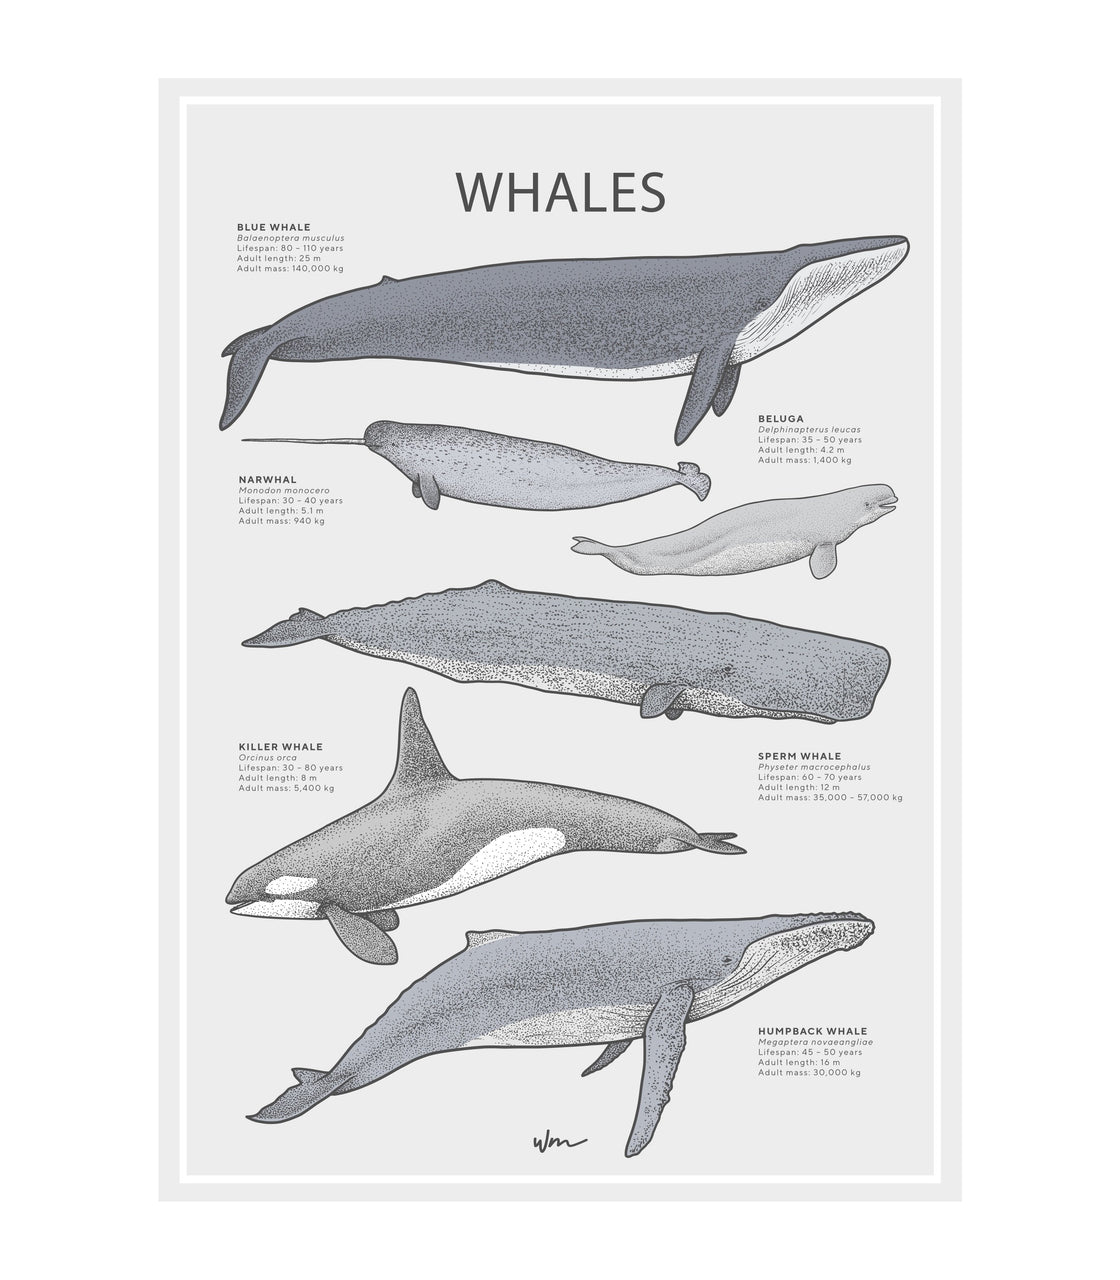 Whales poster decal - Minimalist